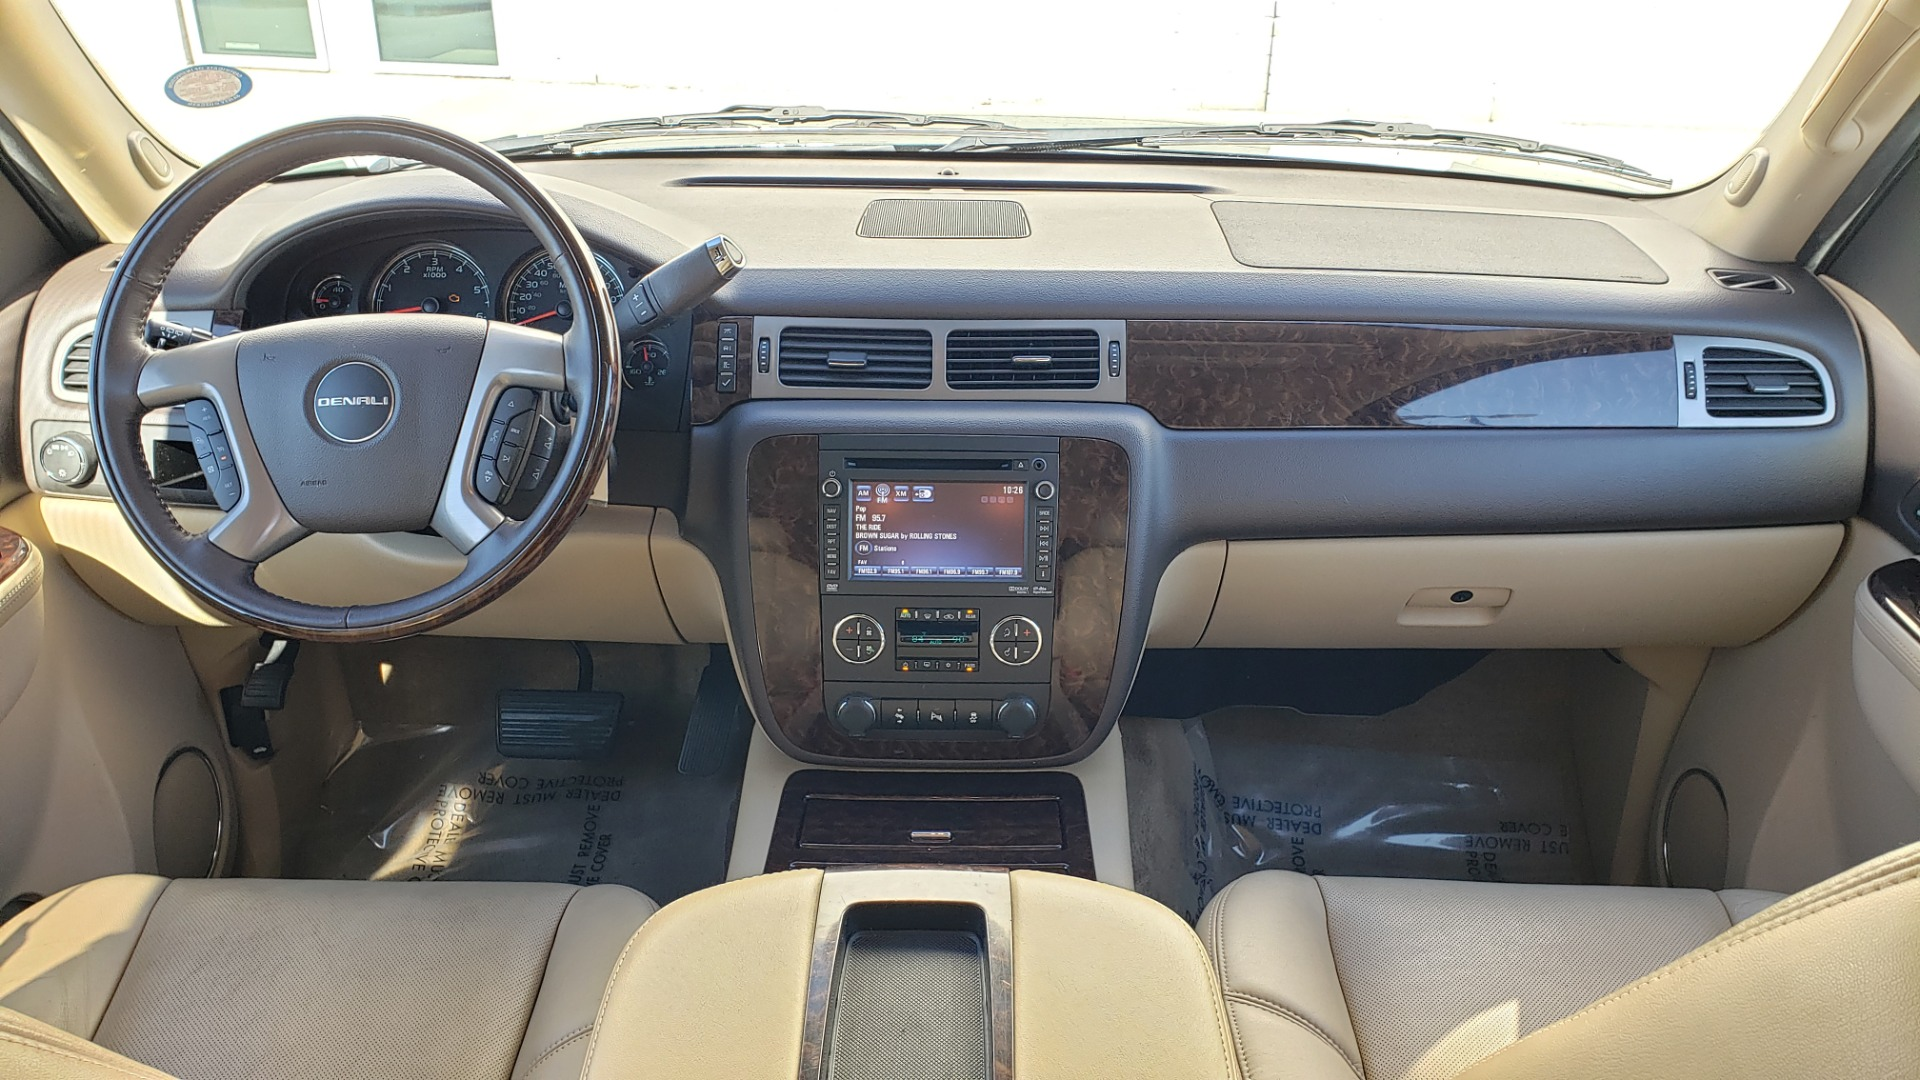 Used 2013 GMC YUKON XL DENALI / AWD / NAV / SUNROOF / 3-ROW / ENTERTAINMENT for sale Sold at Formula Imports in Charlotte NC 28227 77